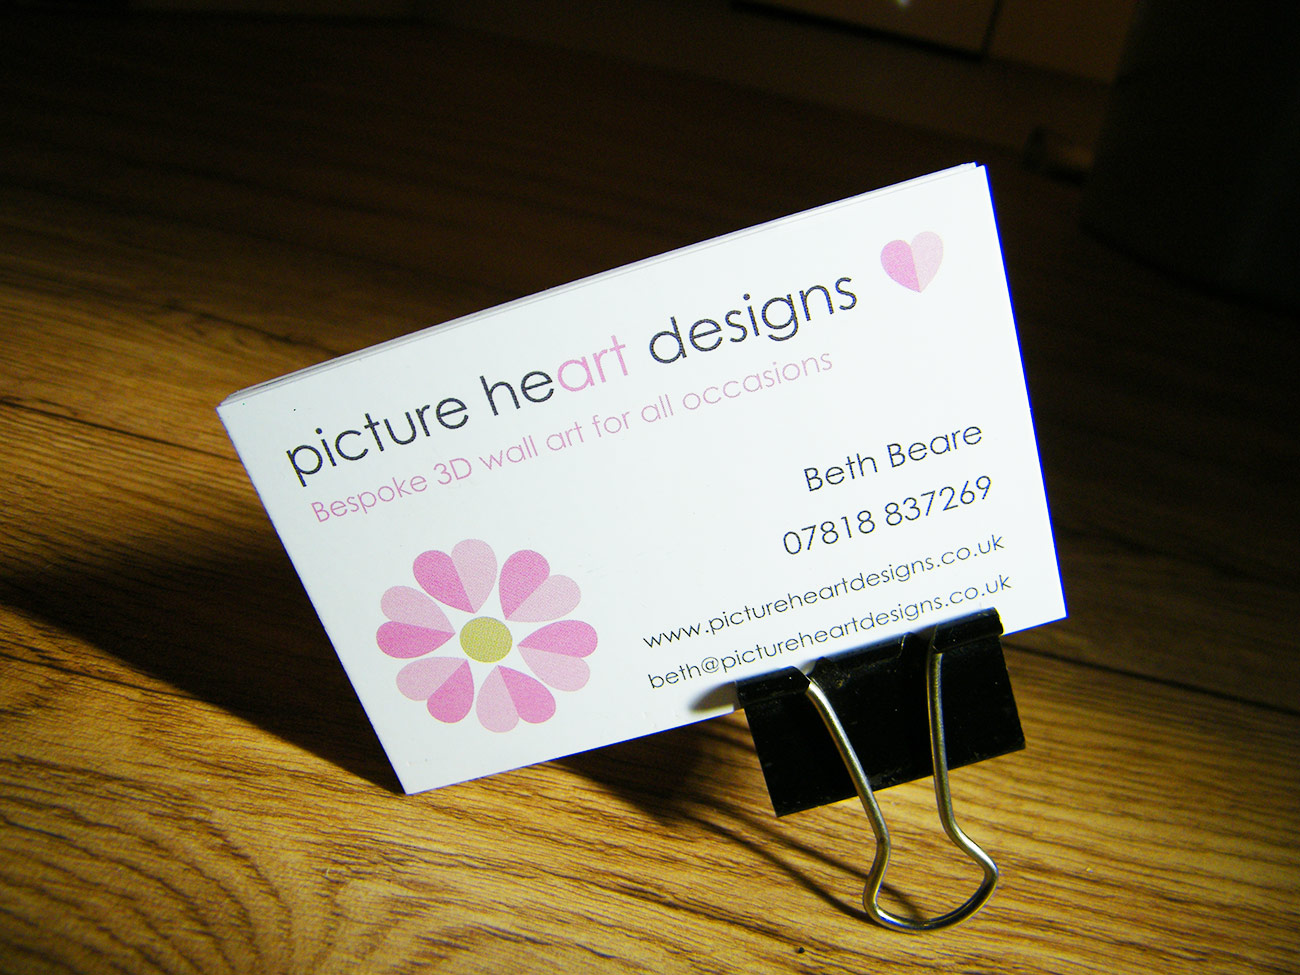 Picture Heart Designs business cards